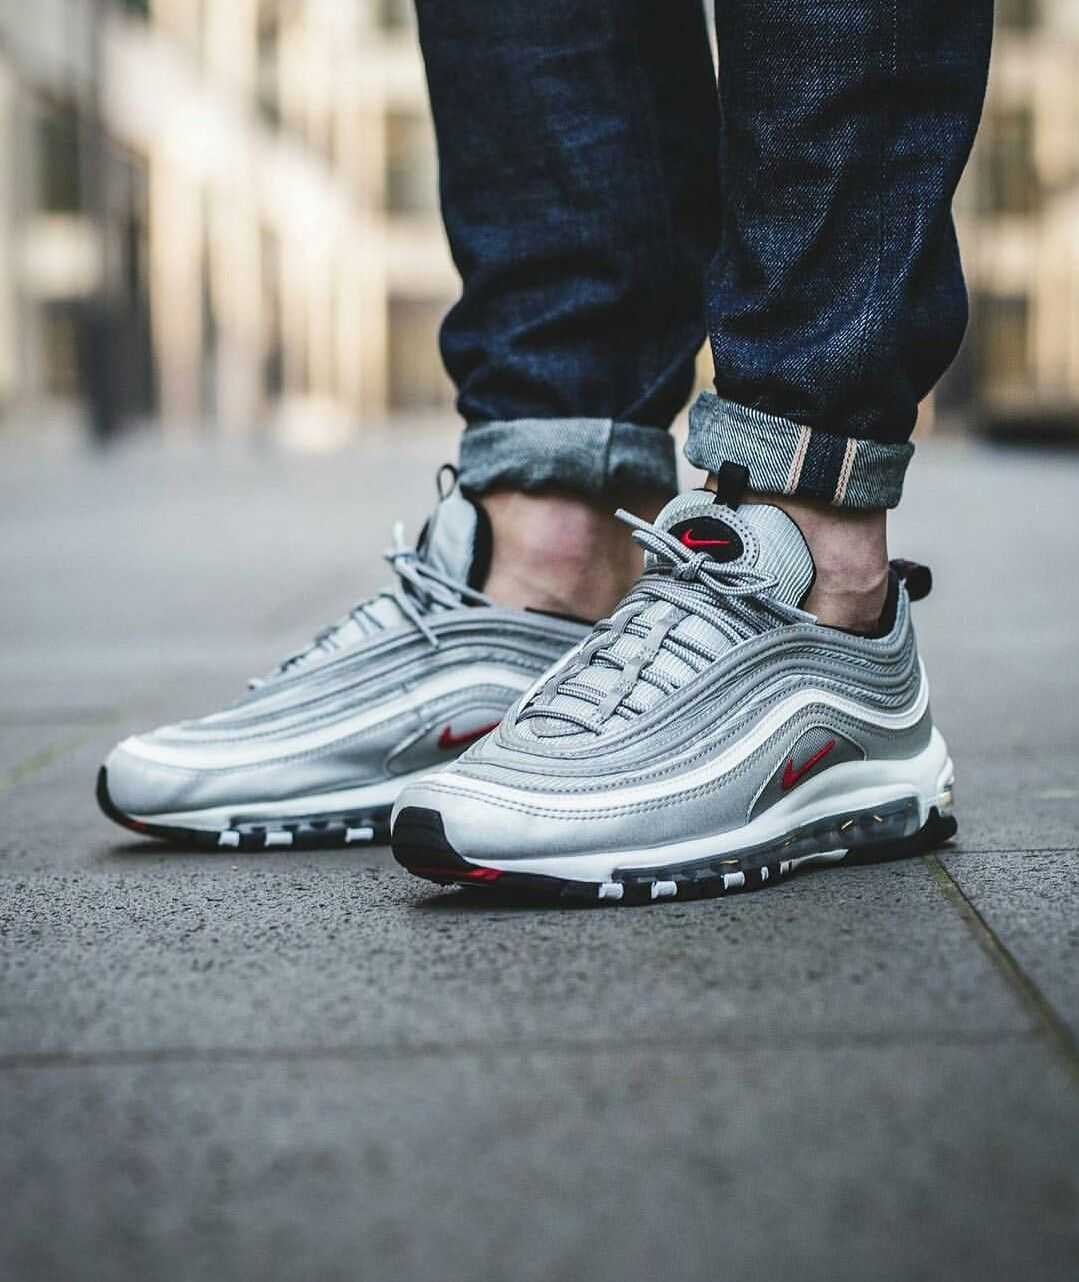 did you cop the nike air max 97 silver bullet dm us if you did